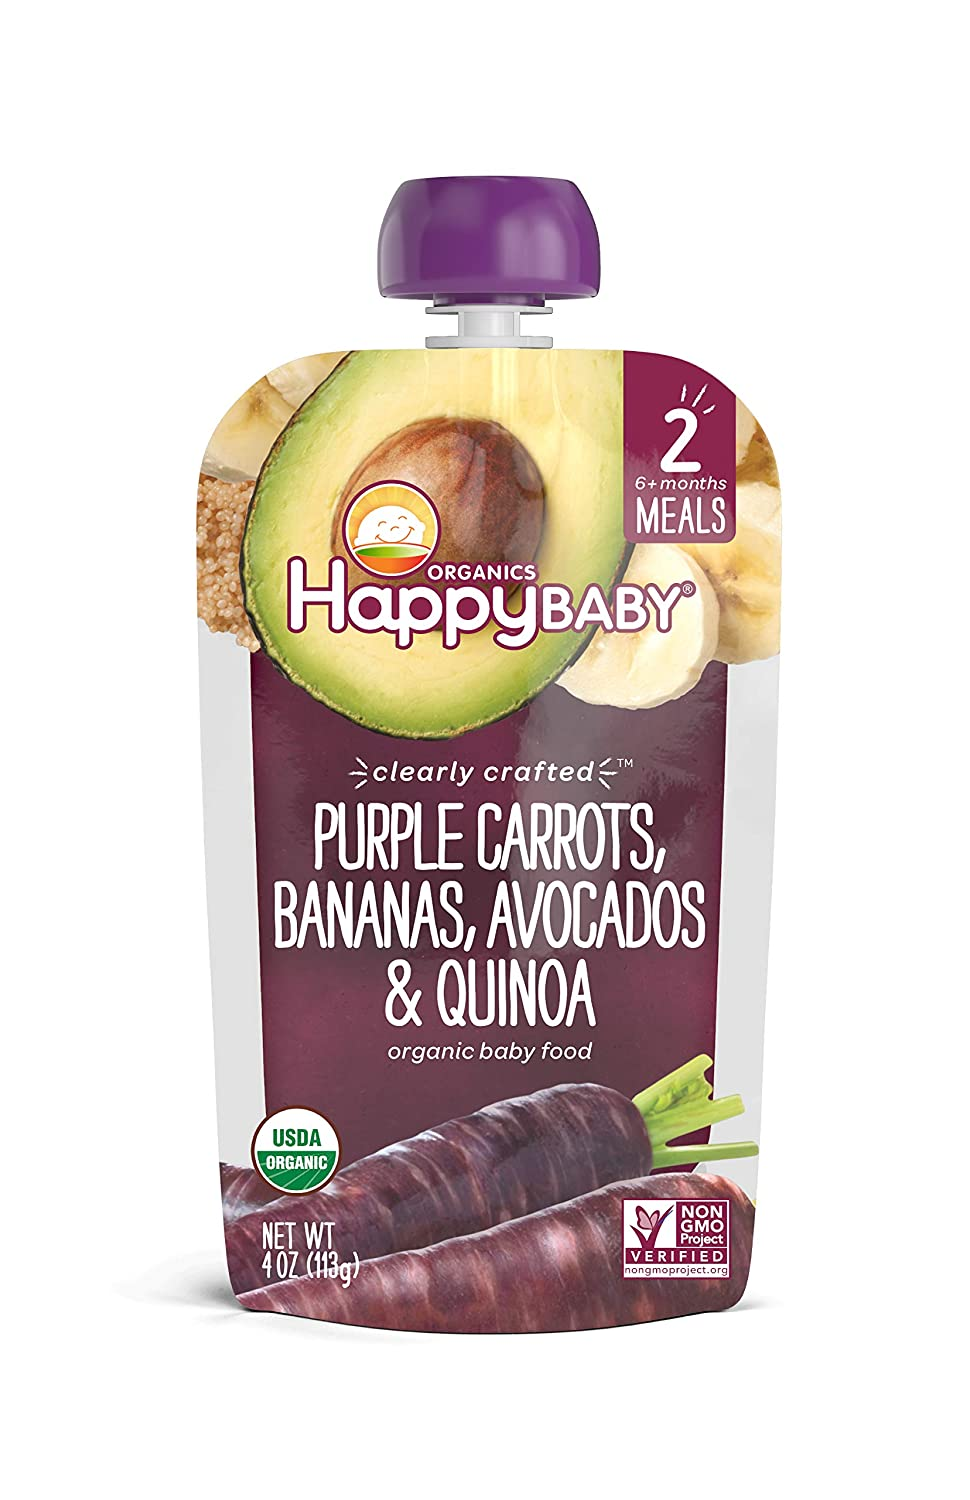 Happy Baby Clearly Crafted Stage 2 Meals Organic Baby Food, Purple Carrots, Bananas, Avocados & Quinoa, 4 Oz